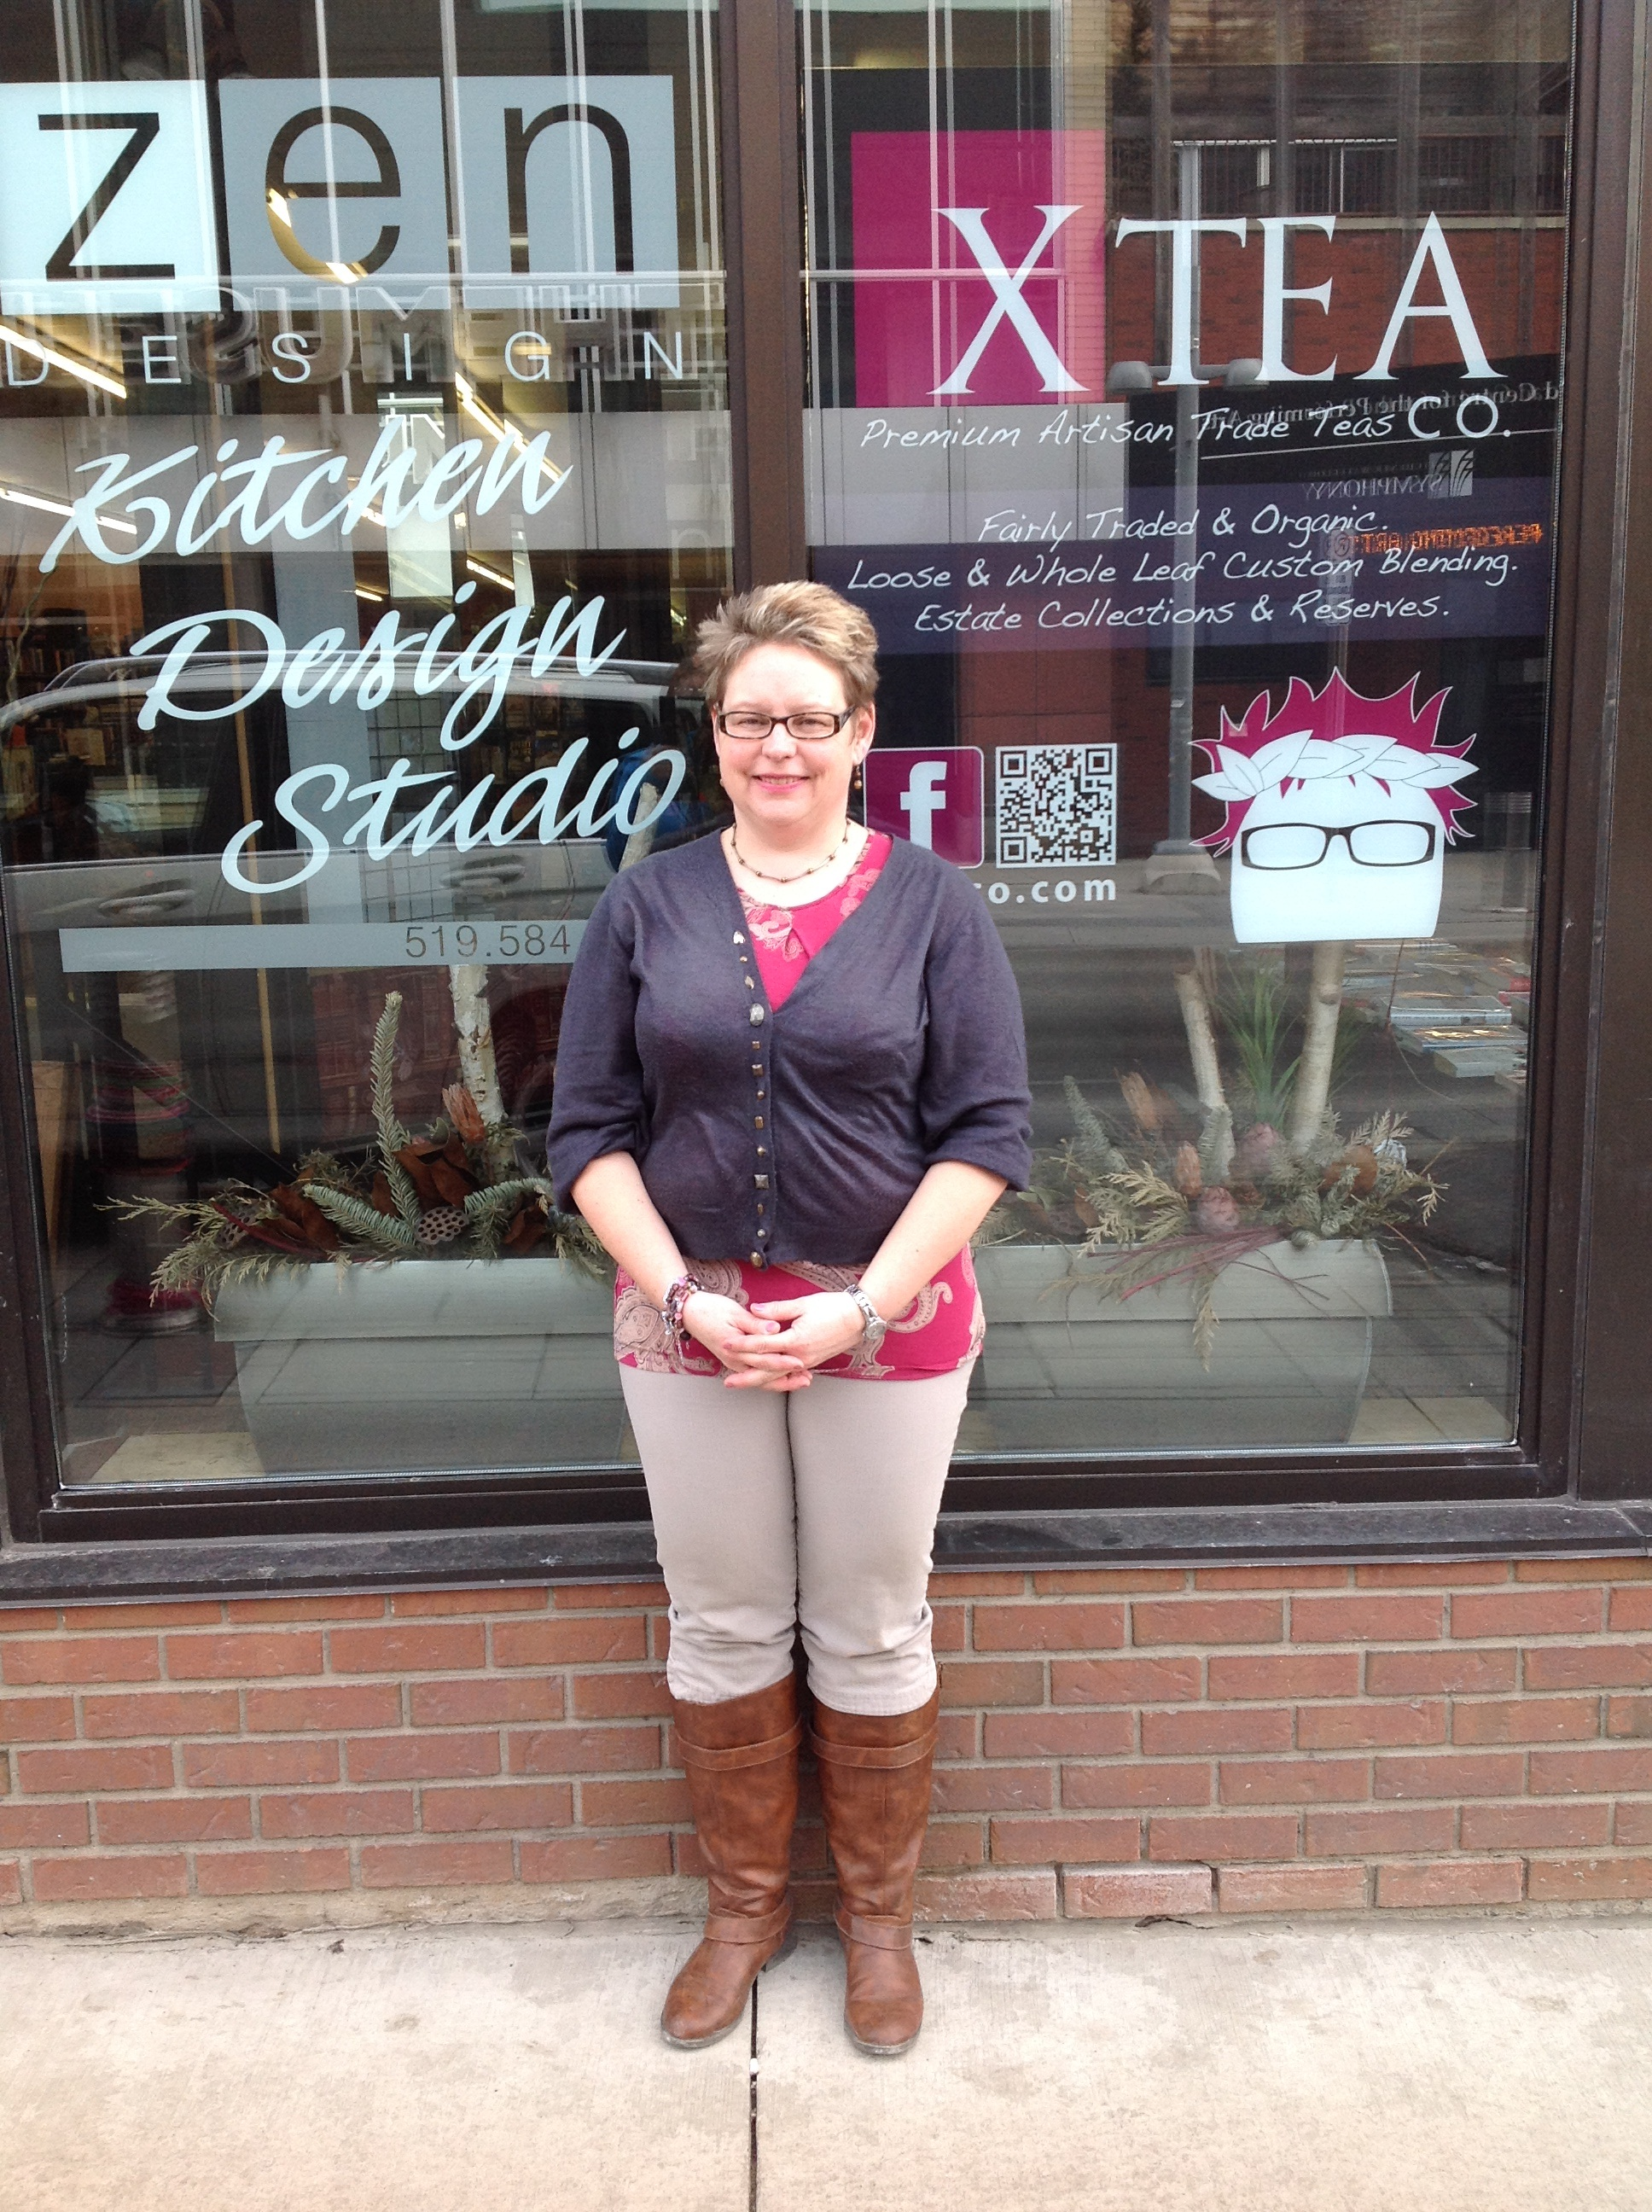 Window Graphic Decals - XTEA CO - The Sign Depot